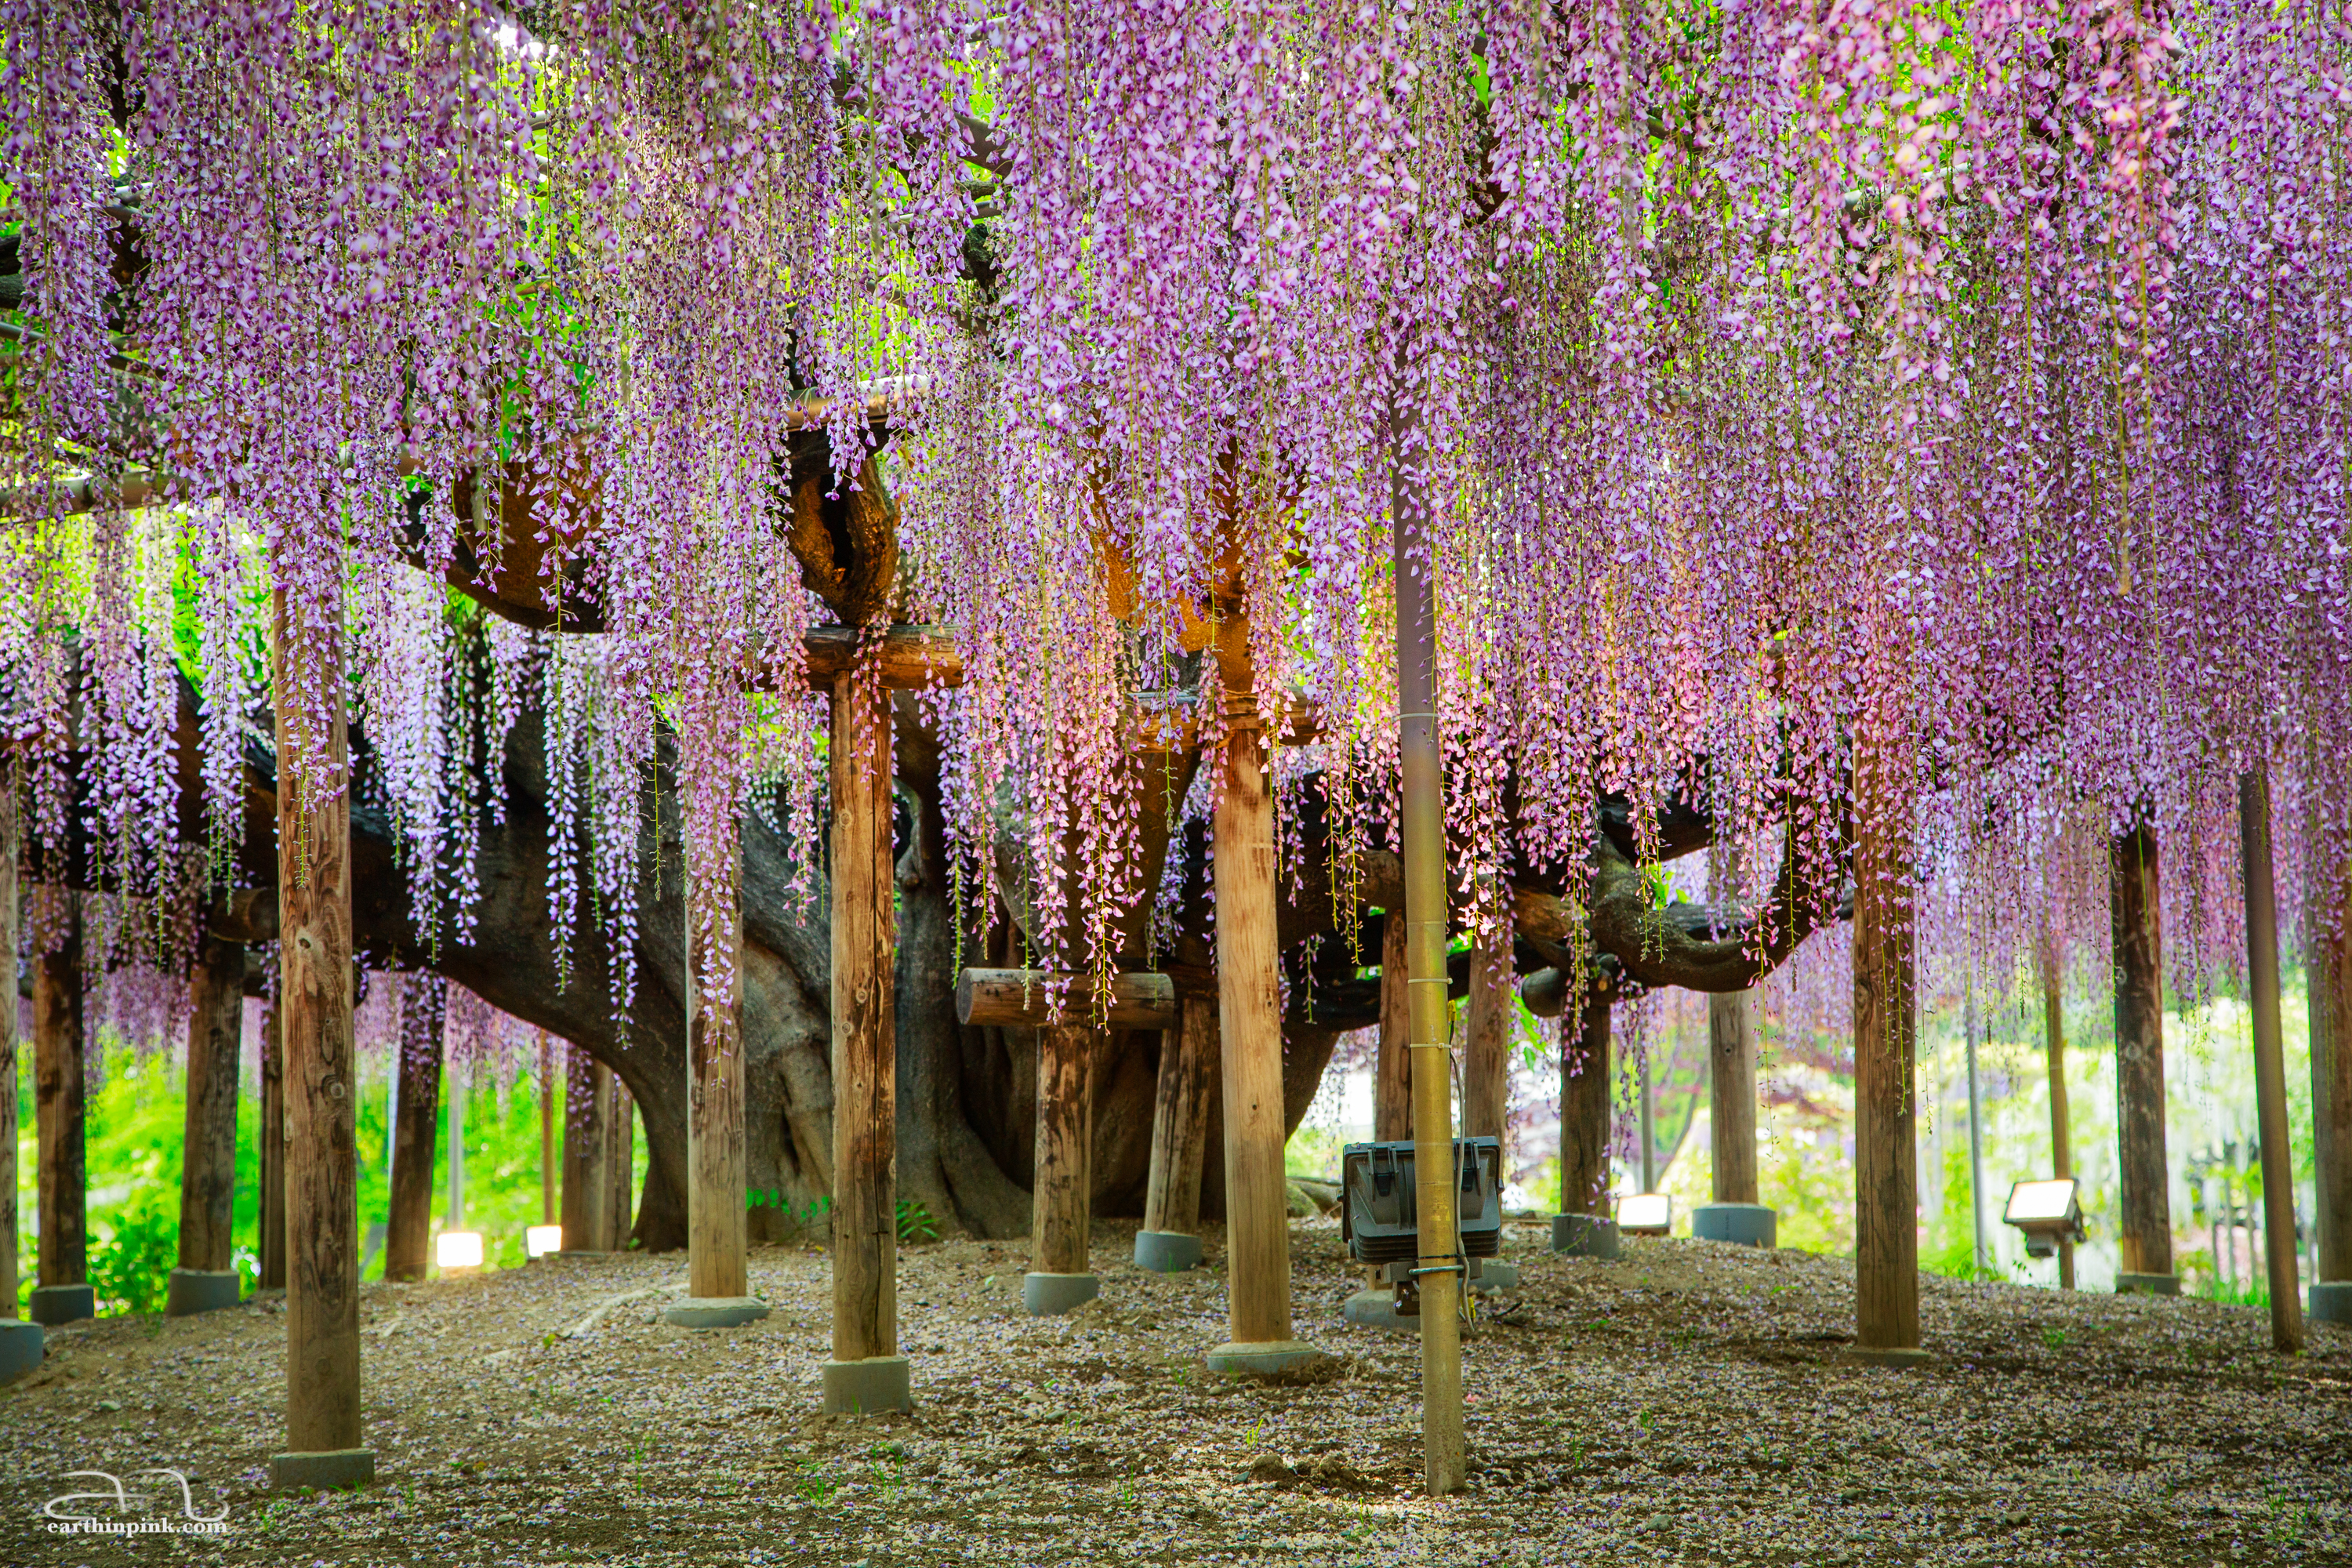 One of the oldest wisteria trees at Ashikaga flower park in Tochigi Prefecture.